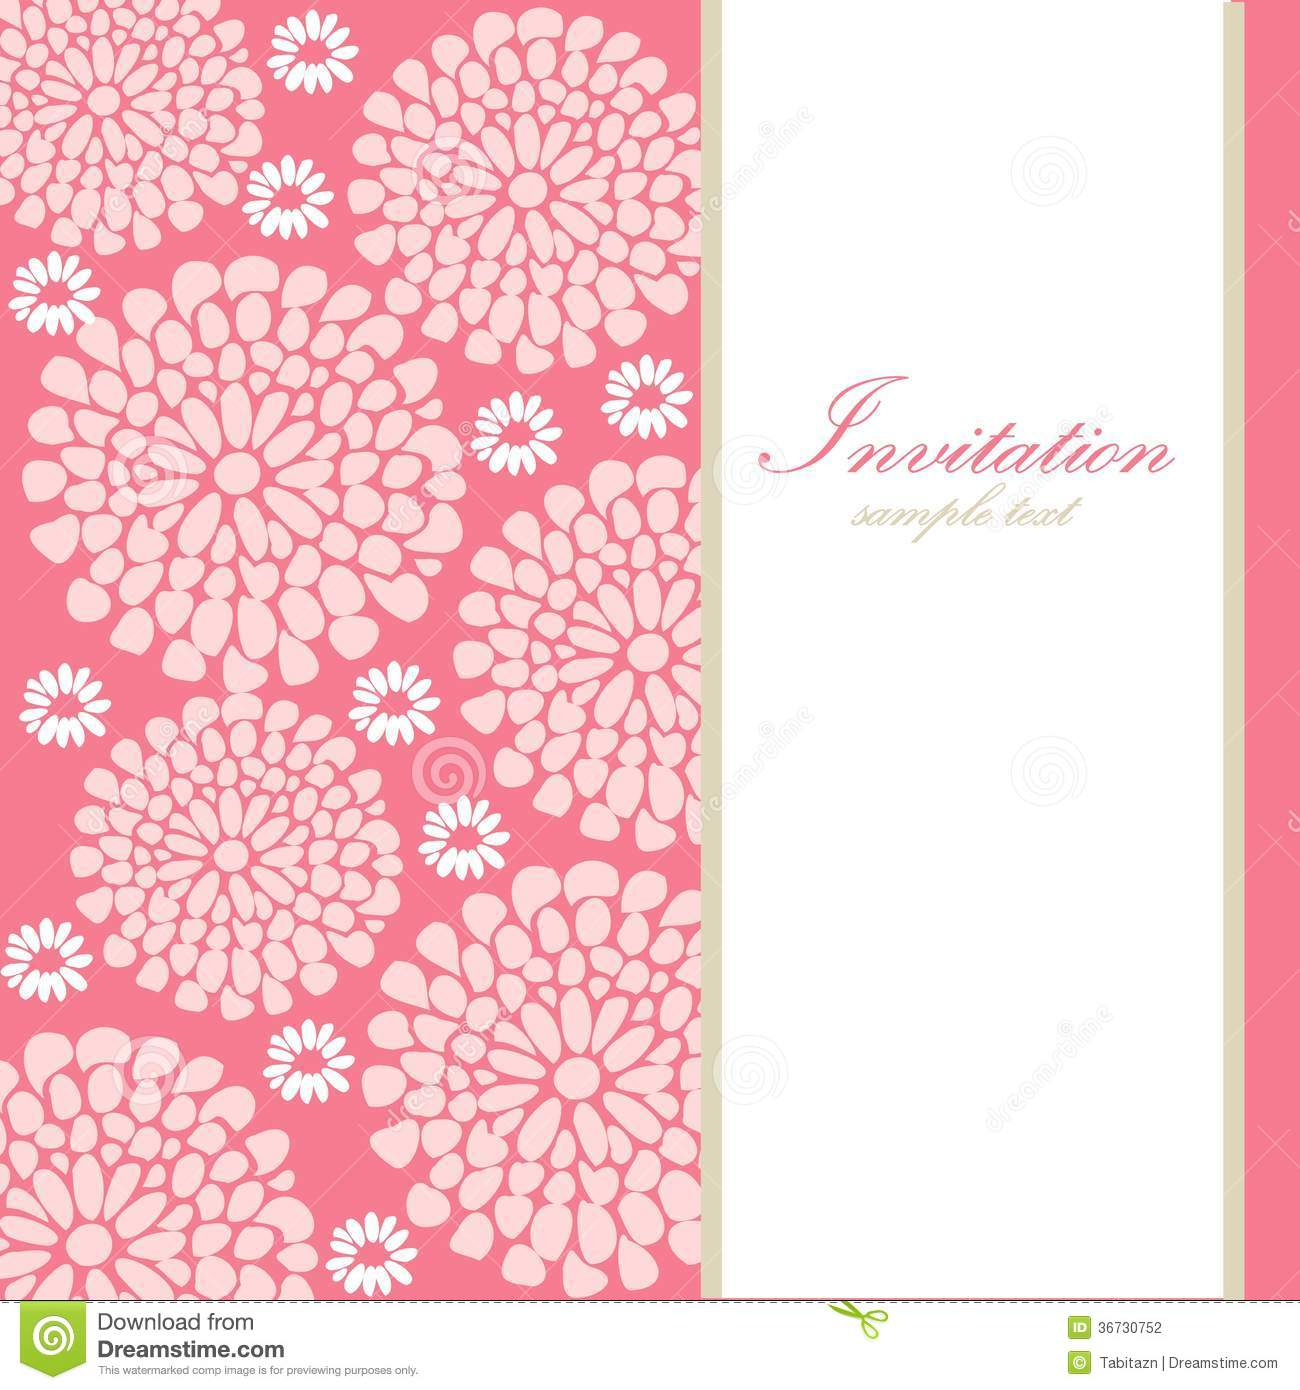 Sweet 16 Invitation Card as perfect invitations layout